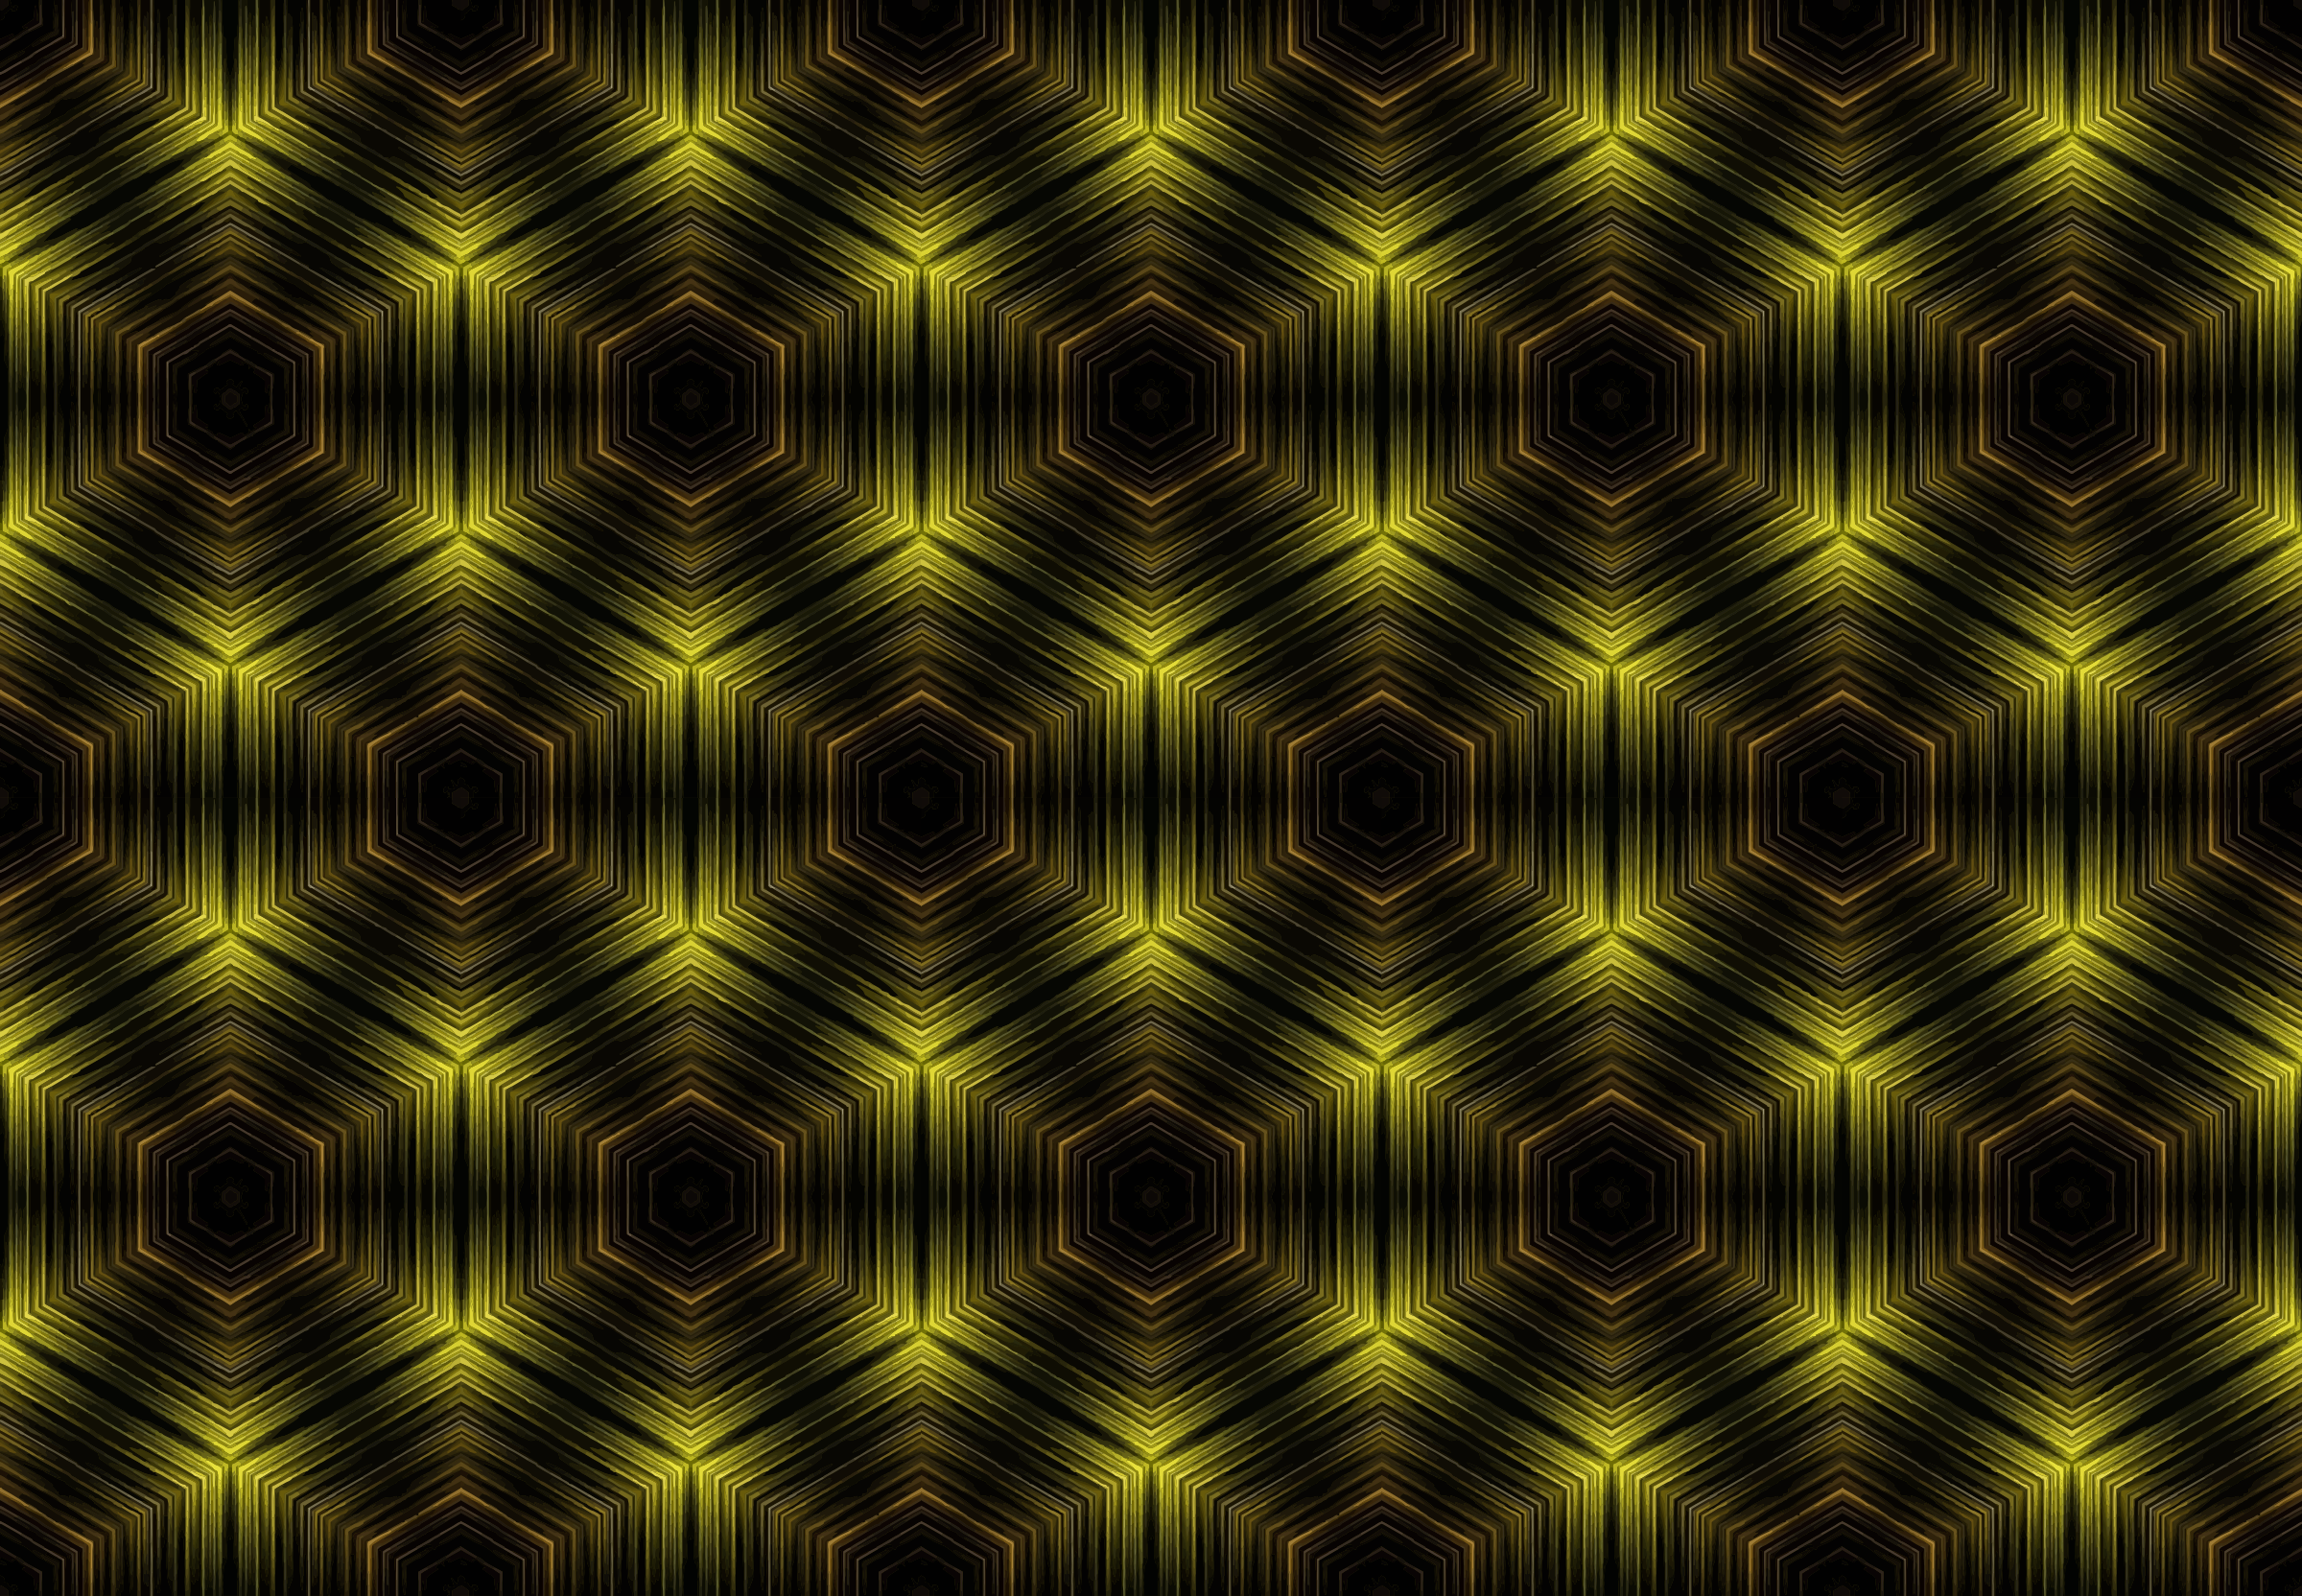 Background pattern 320 (colour 2) by Firkin